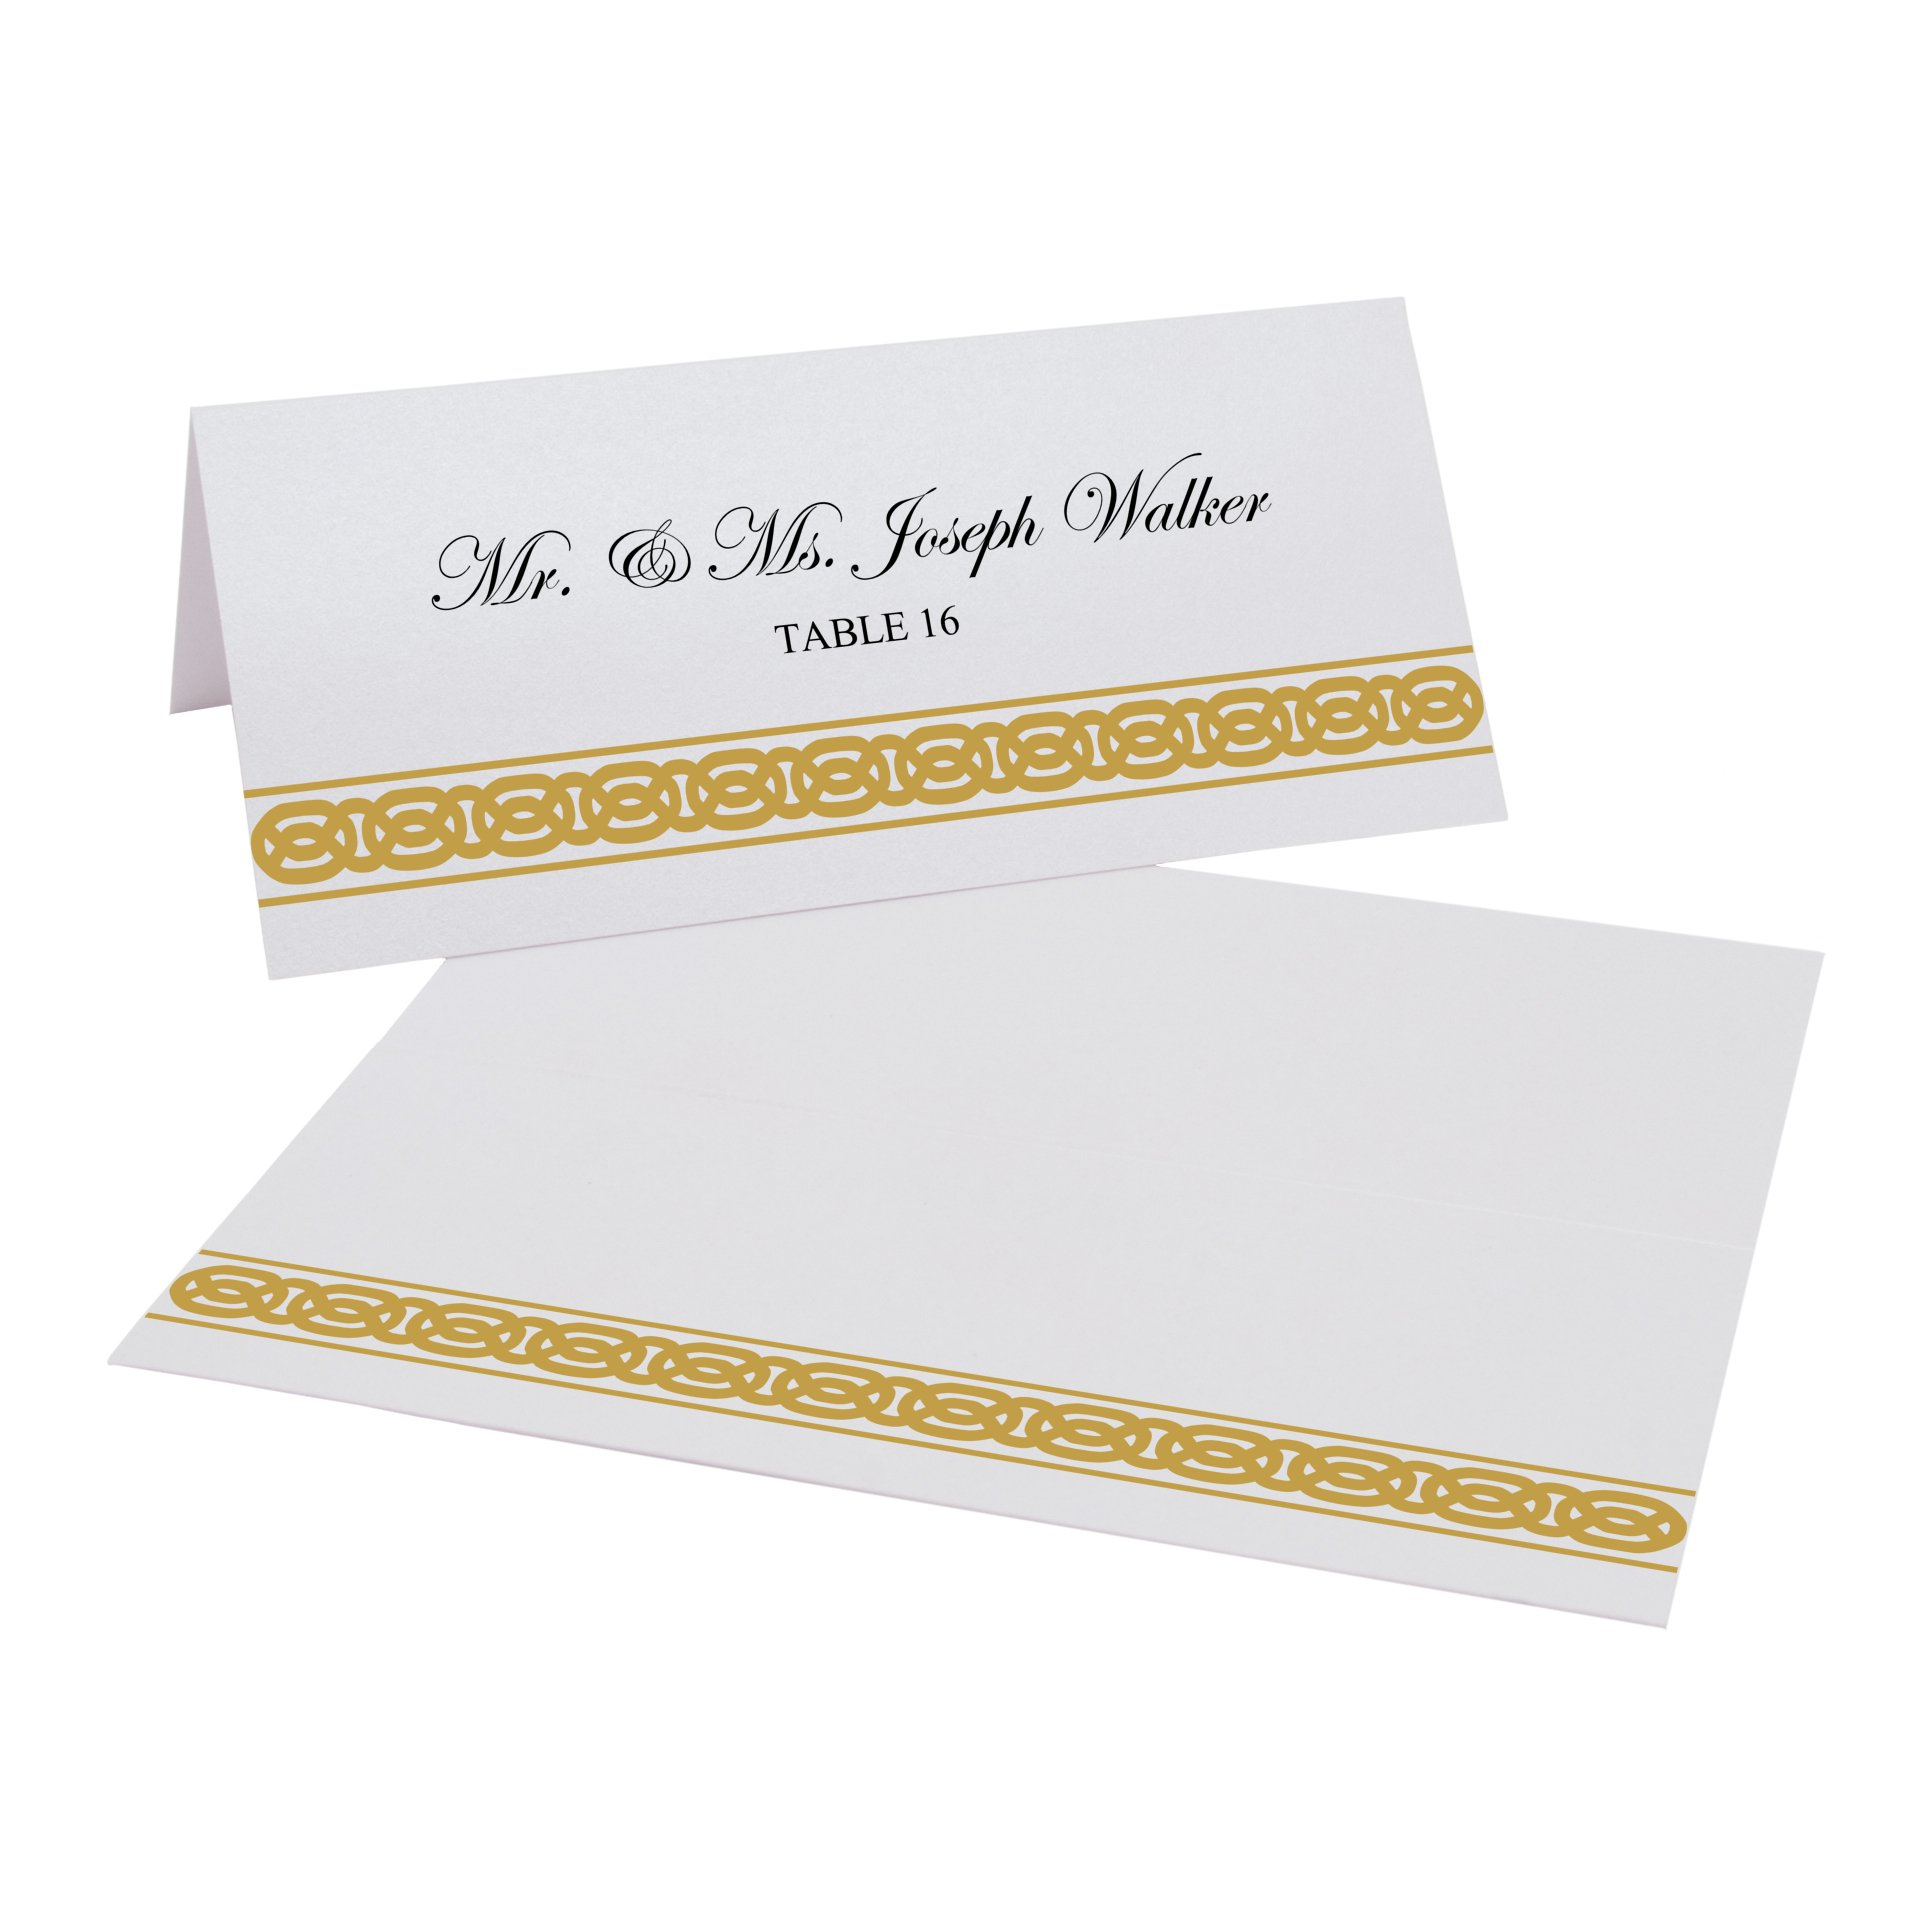 Documents and Designs Celtic Band Border Easy Print Place Cards (Select Color), Gold, Set of 150 (25 Sheets)